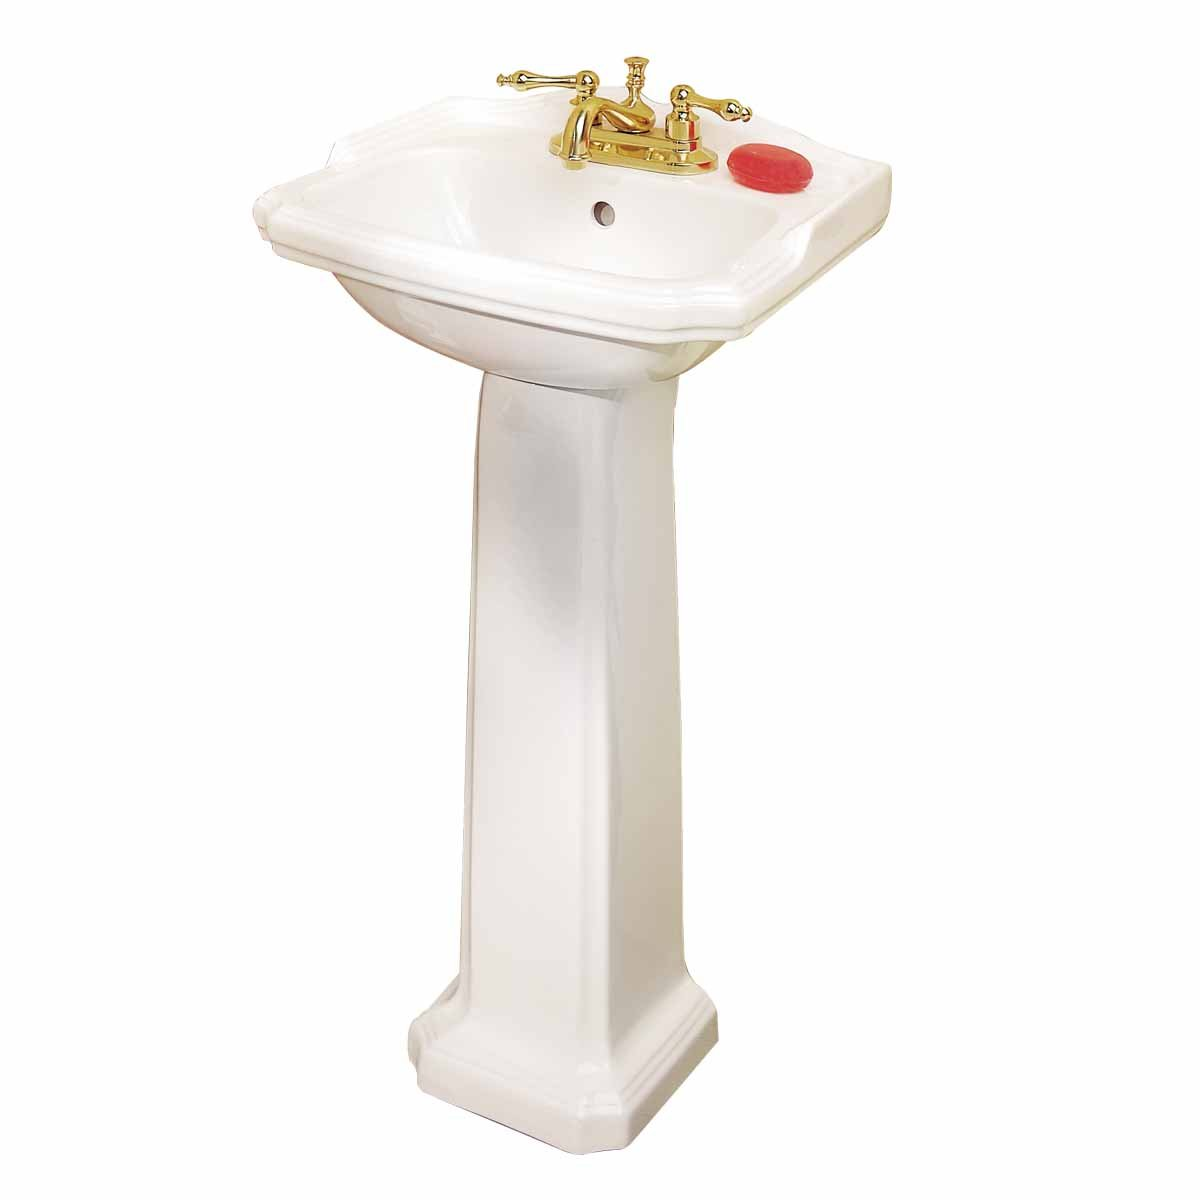 Small Pedestal Sink White Vitreous China Scratch/Stain Resistant Open Back Easy Clean And Install Renovator's Supply